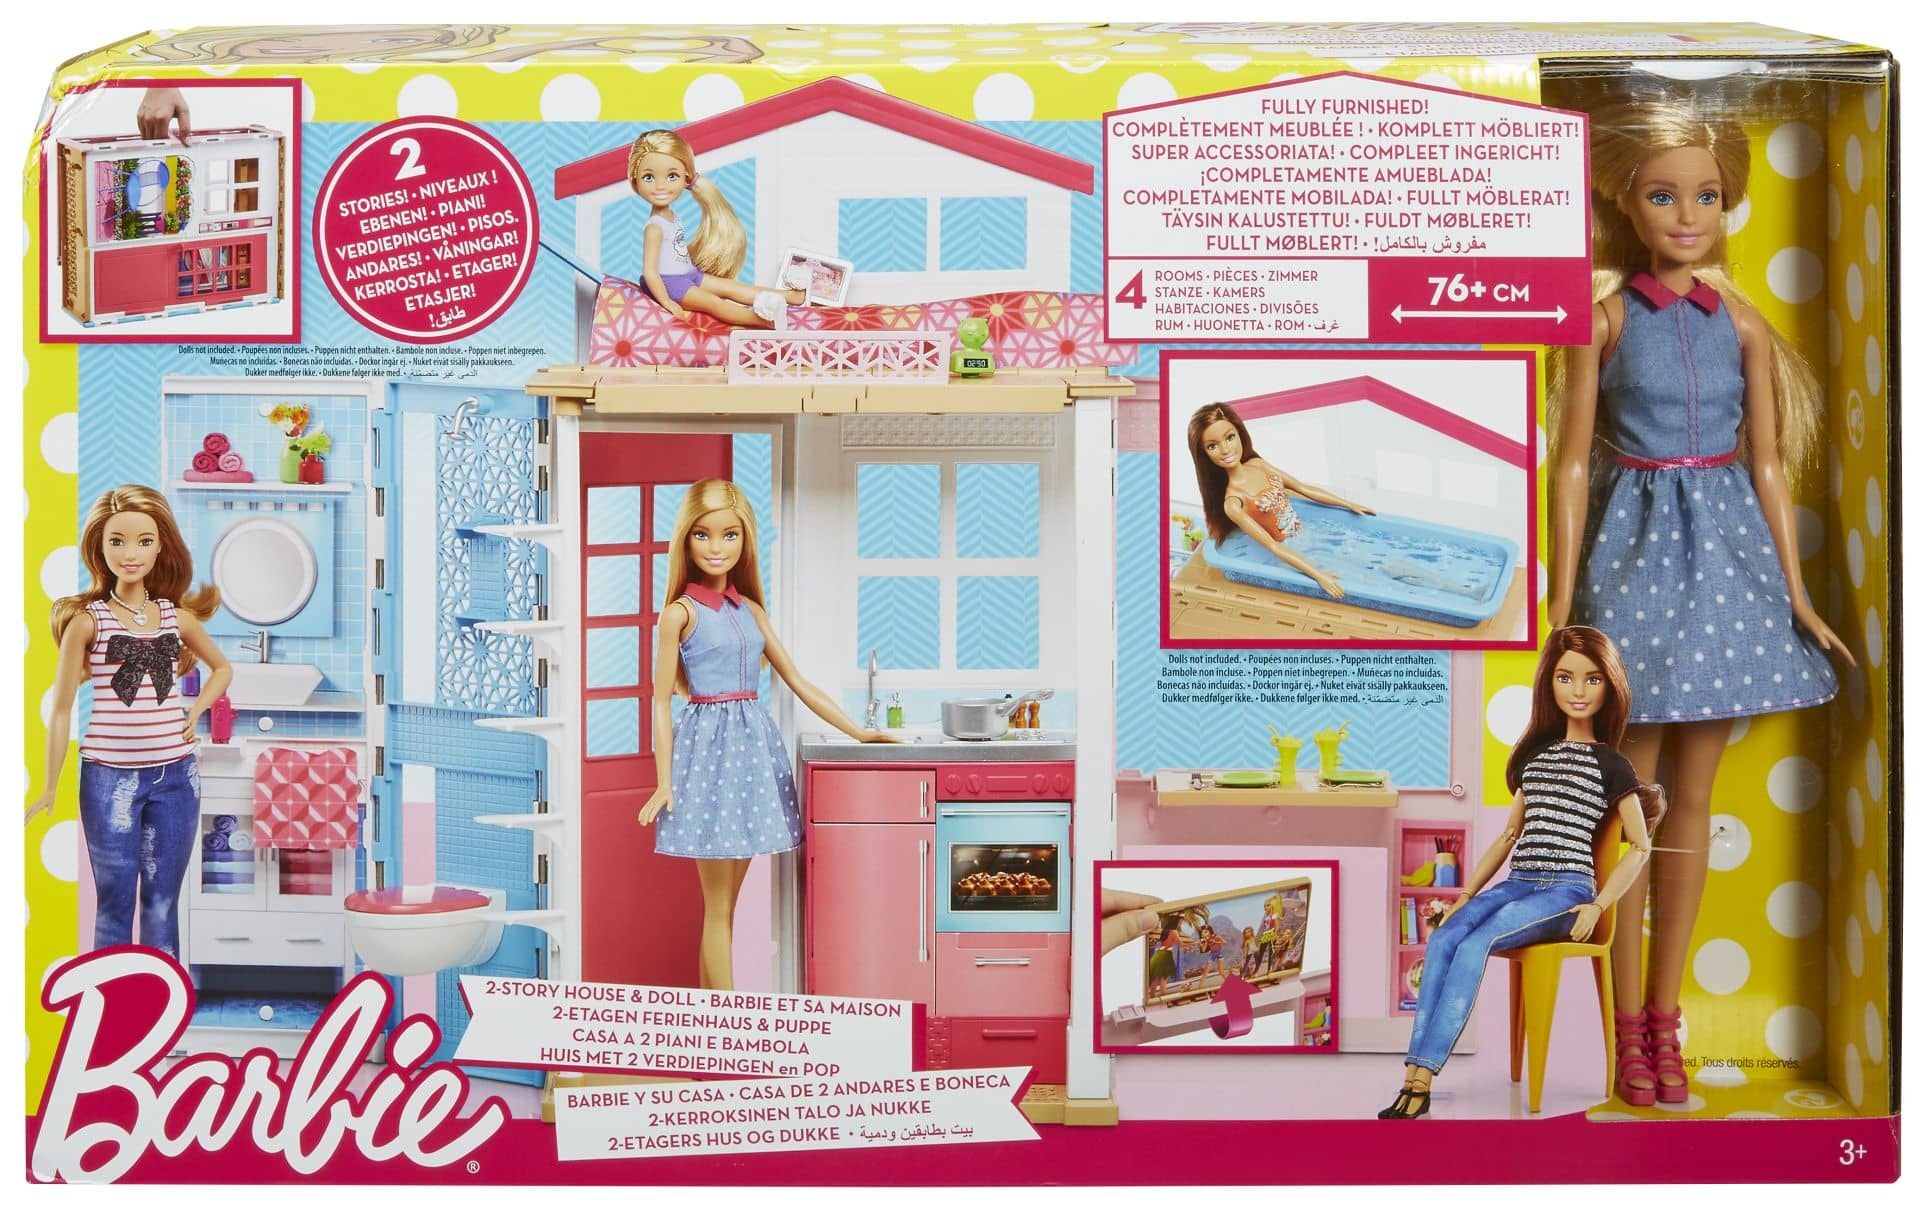 barbie 2 etagen ferienhaus mit 1 puppe g nstig online kaufen. Black Bedroom Furniture Sets. Home Design Ideas